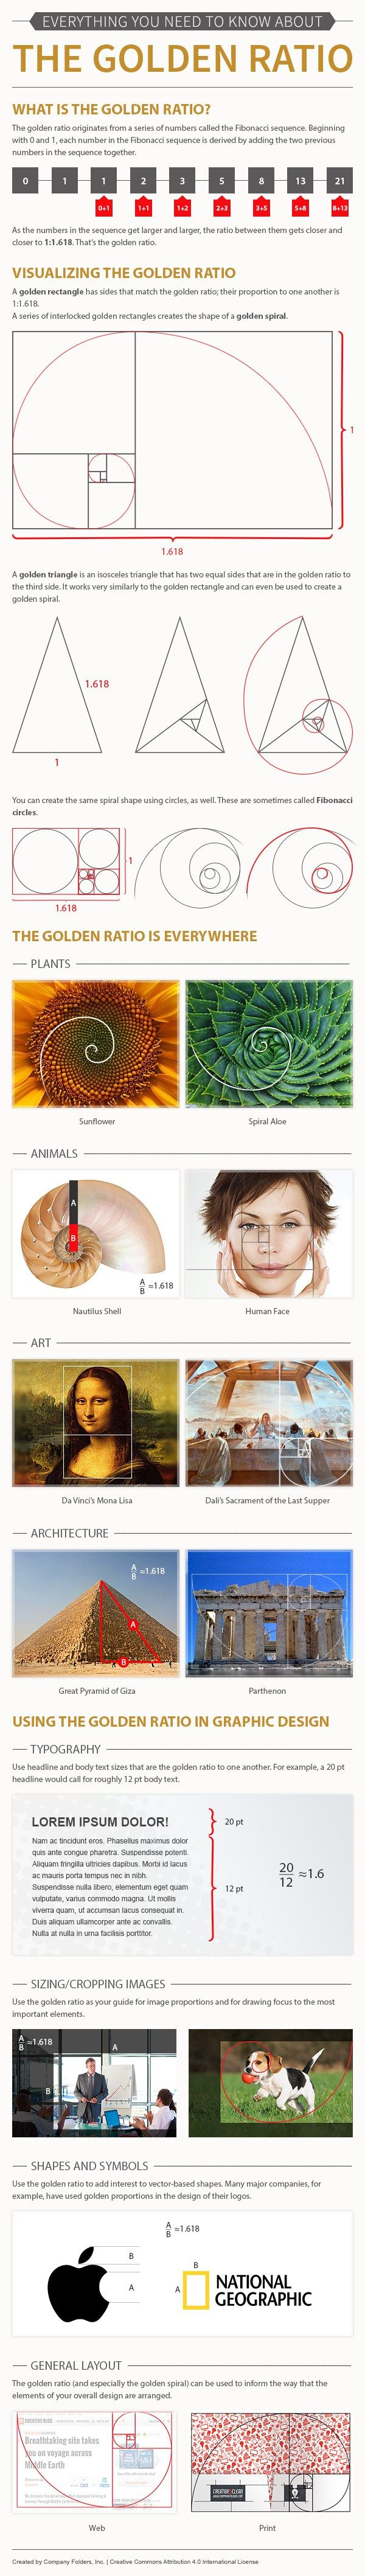 Tips to Apply the Golden Ratio in Photography and Design